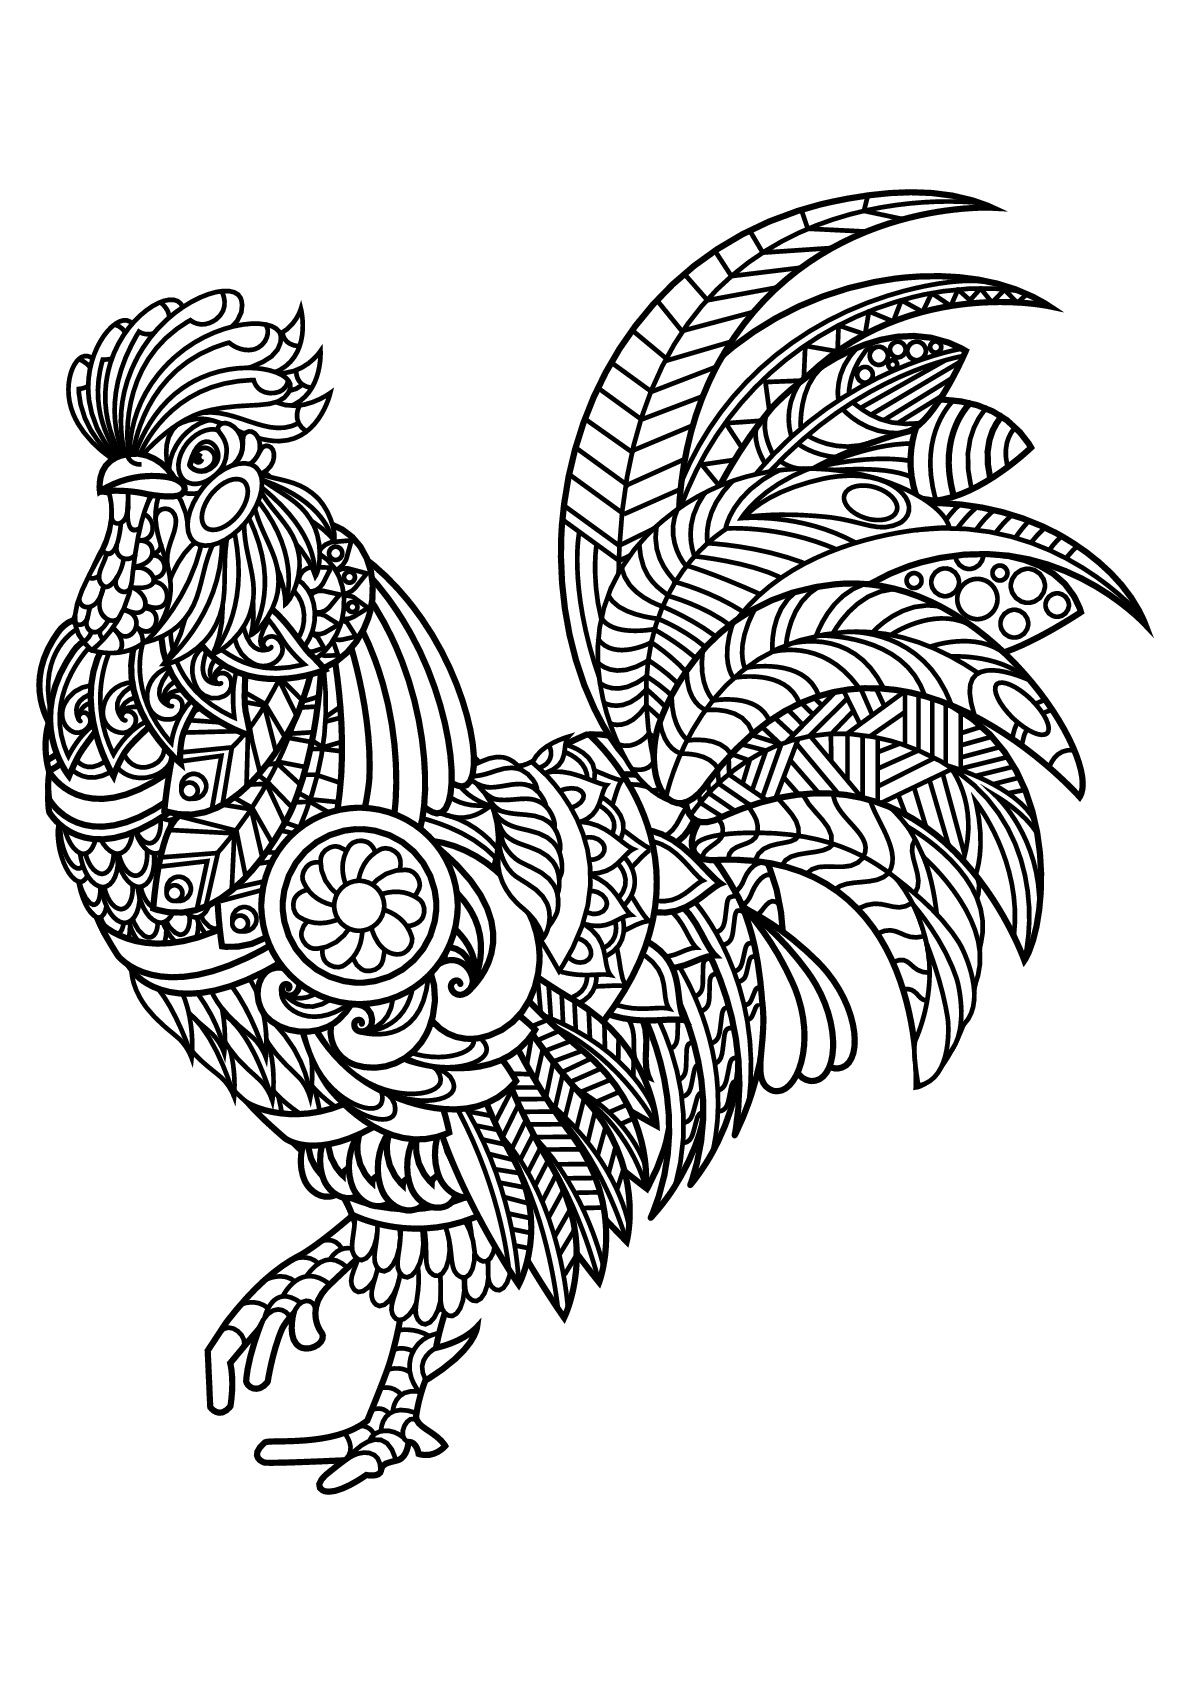 25 Brilliant Photo Of Rooster Coloring Page Albanysinsanity Com Chicken Coloring Pages Bird Coloring Pages Coloring Pictures Of Animals